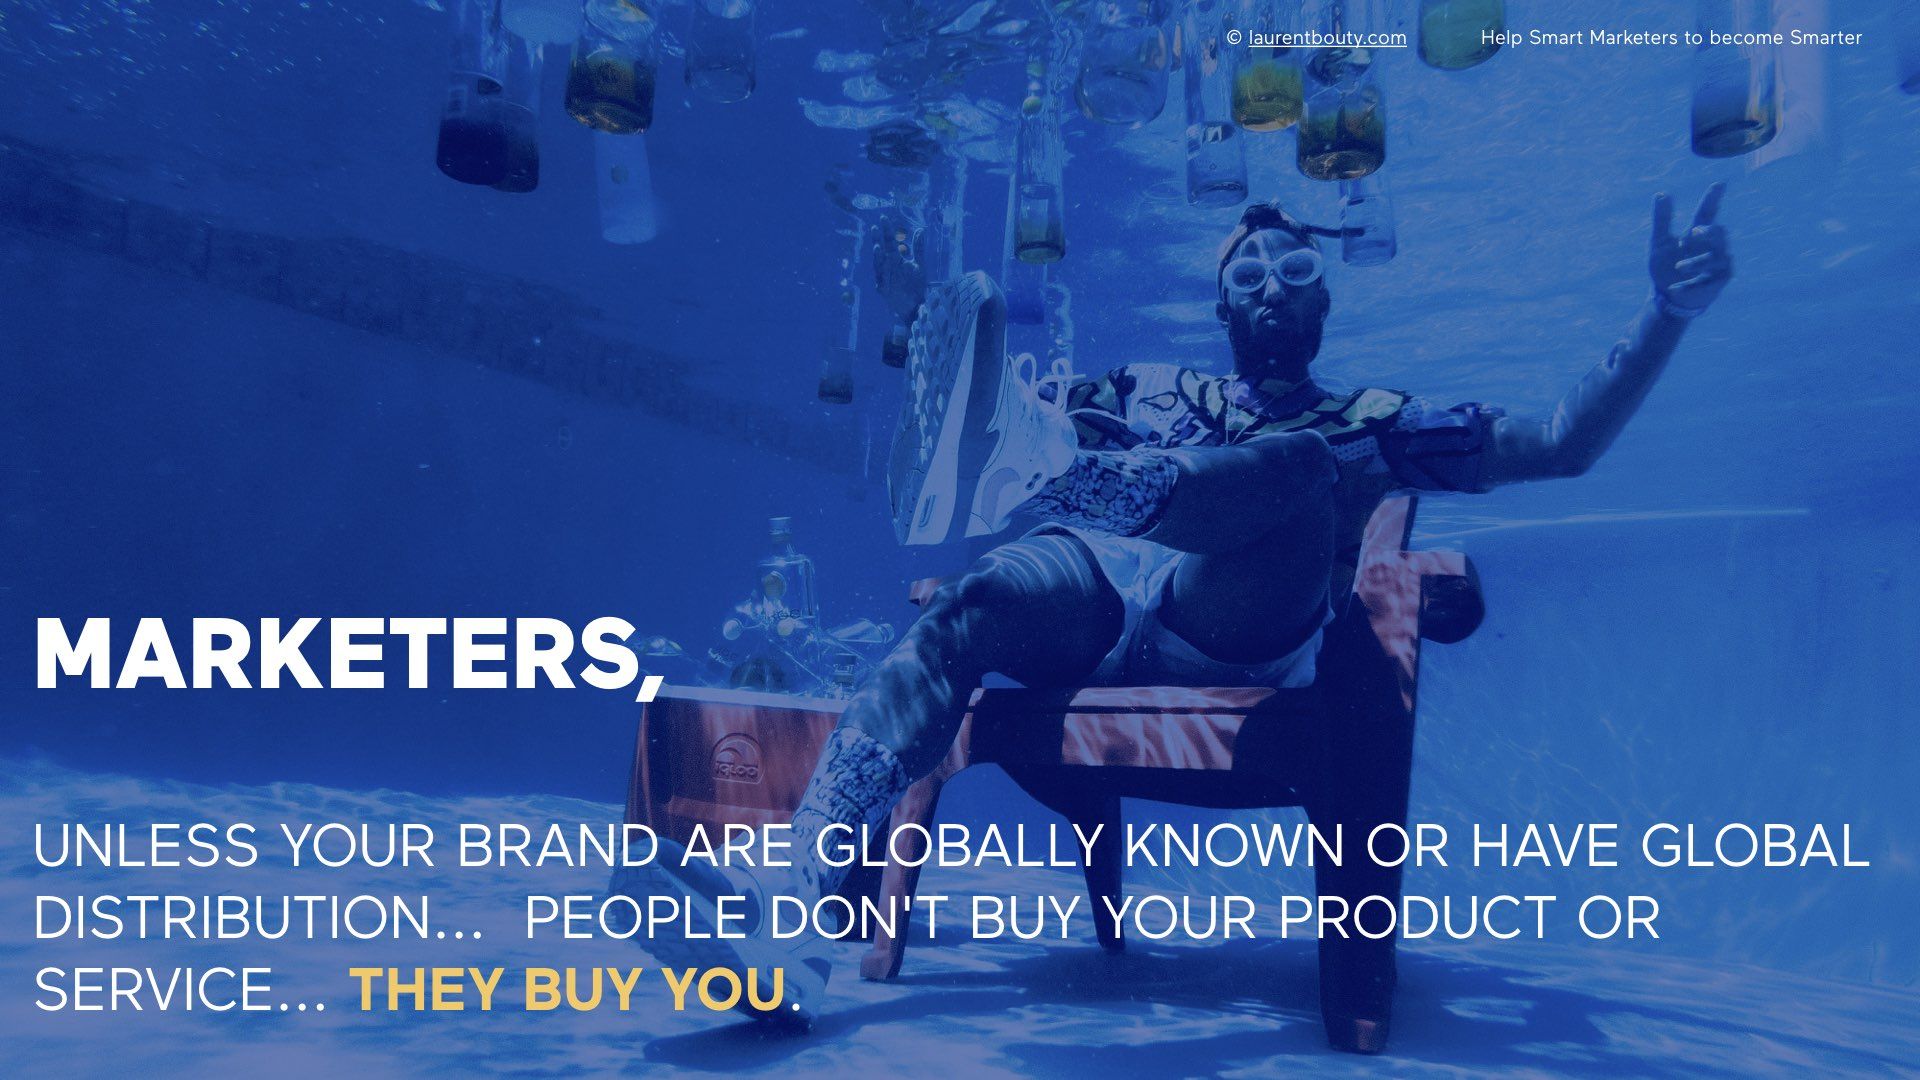 Marketers, The brand is you unless you are global